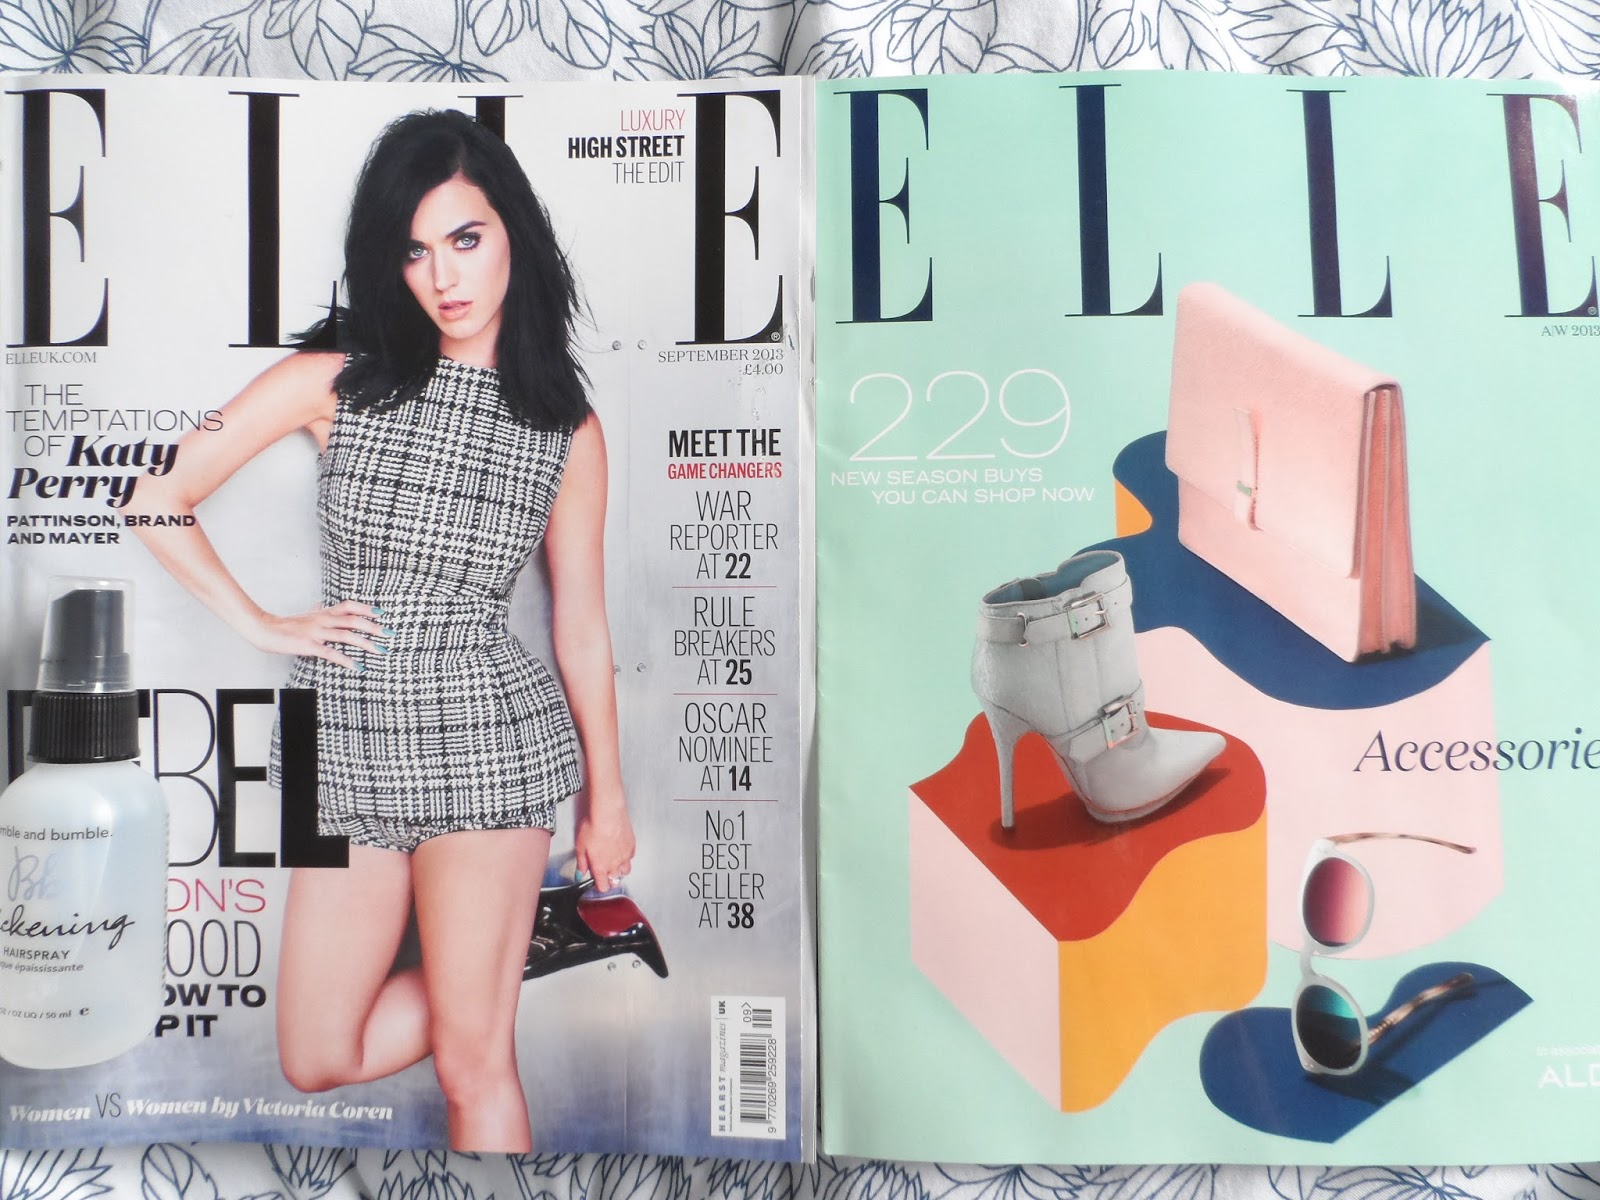 Thrifty and fashion for Elle magazine this month